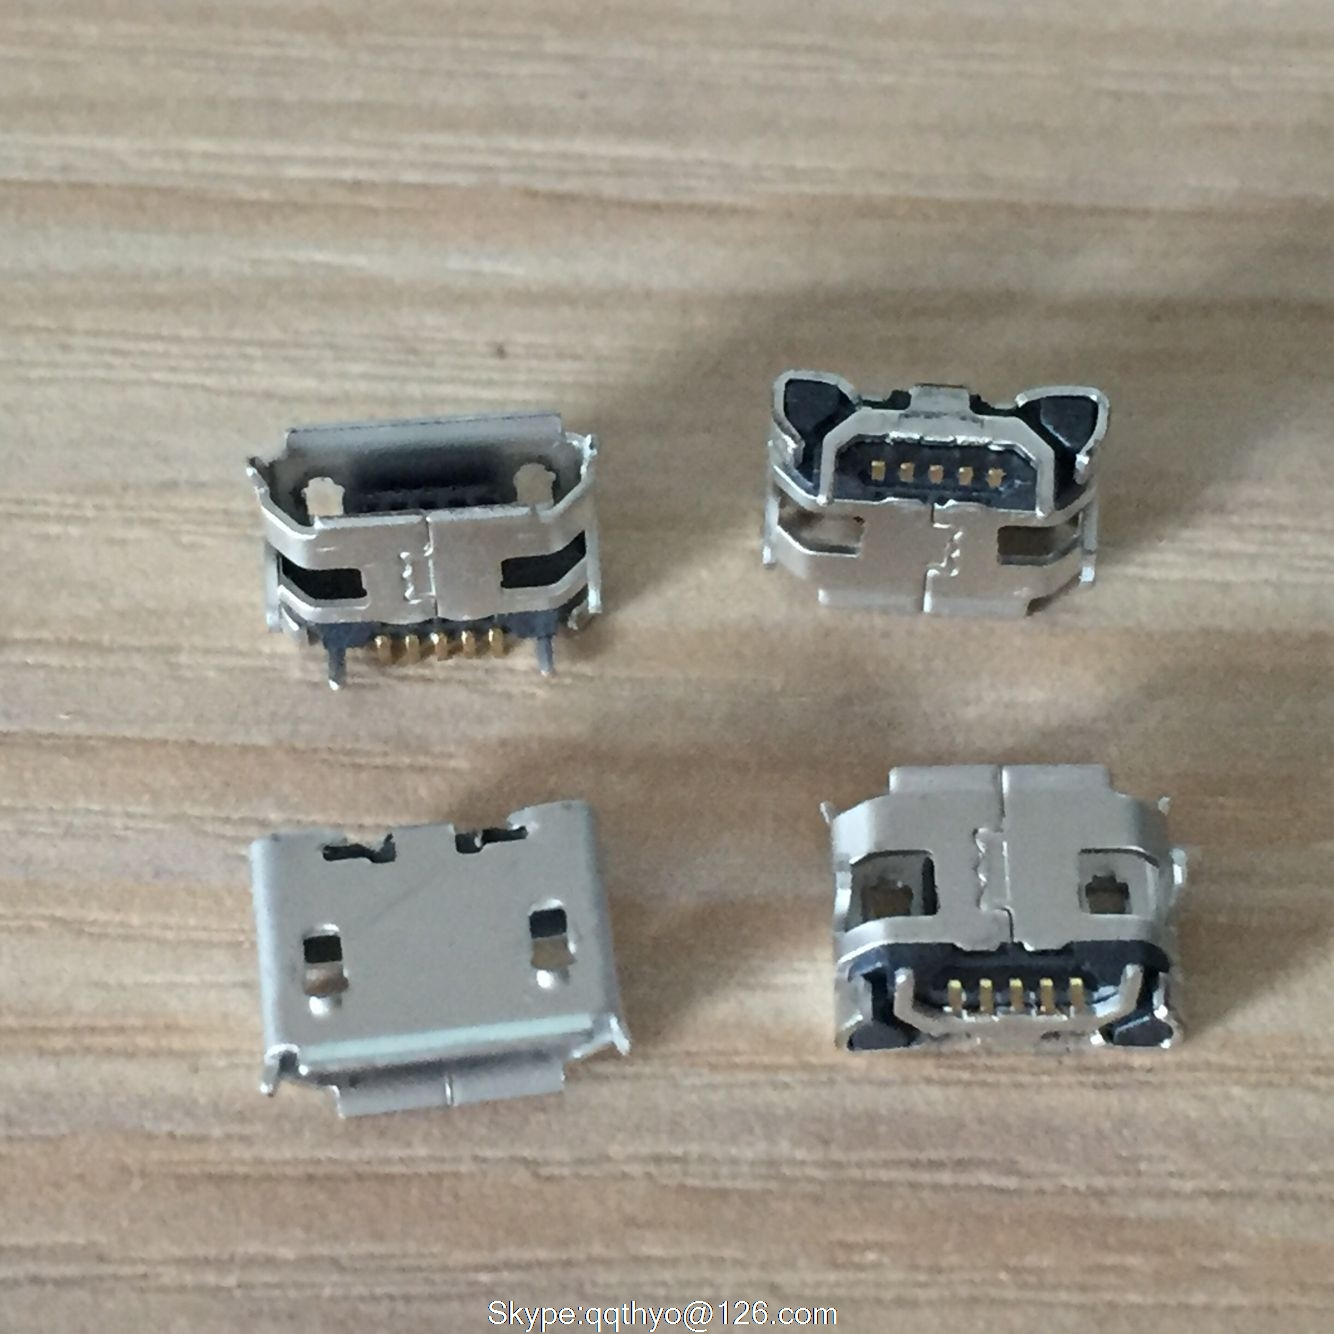 New high quality 10pcs <font><b>Micro</b></font> <font><b>USB</b></font> <font><b>Connector</b></font> Jack Female Type 5Pin SMT Tail Charging socket <font><b>PCB</b></font> Board image